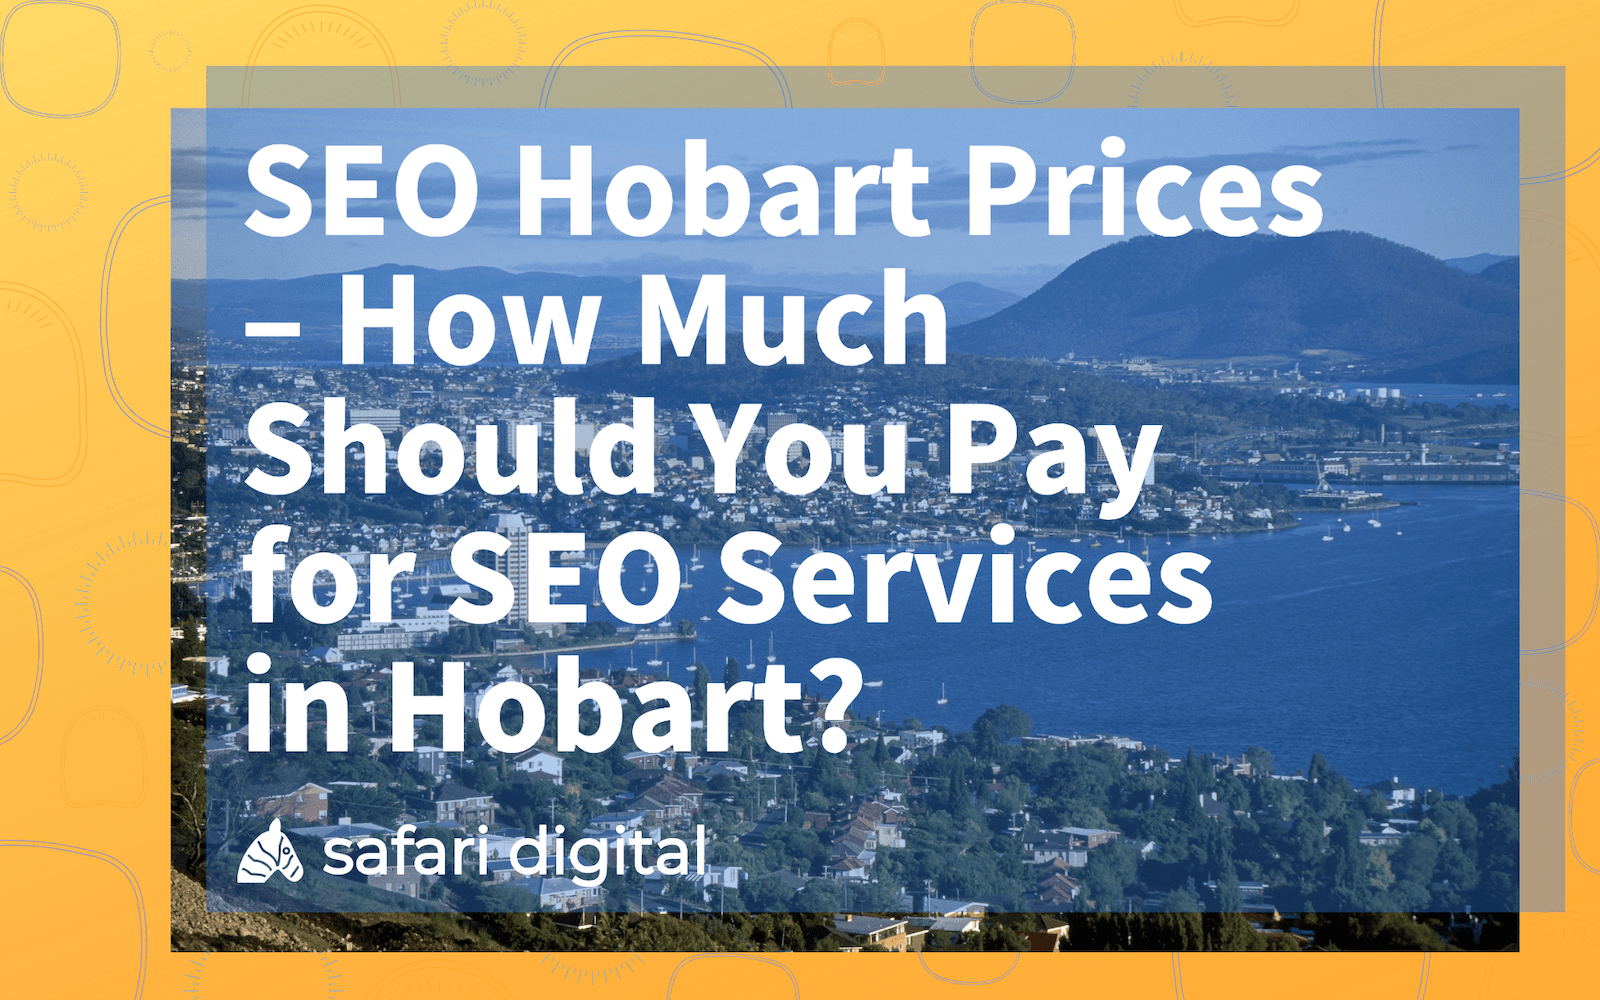 seo hobart prices small image